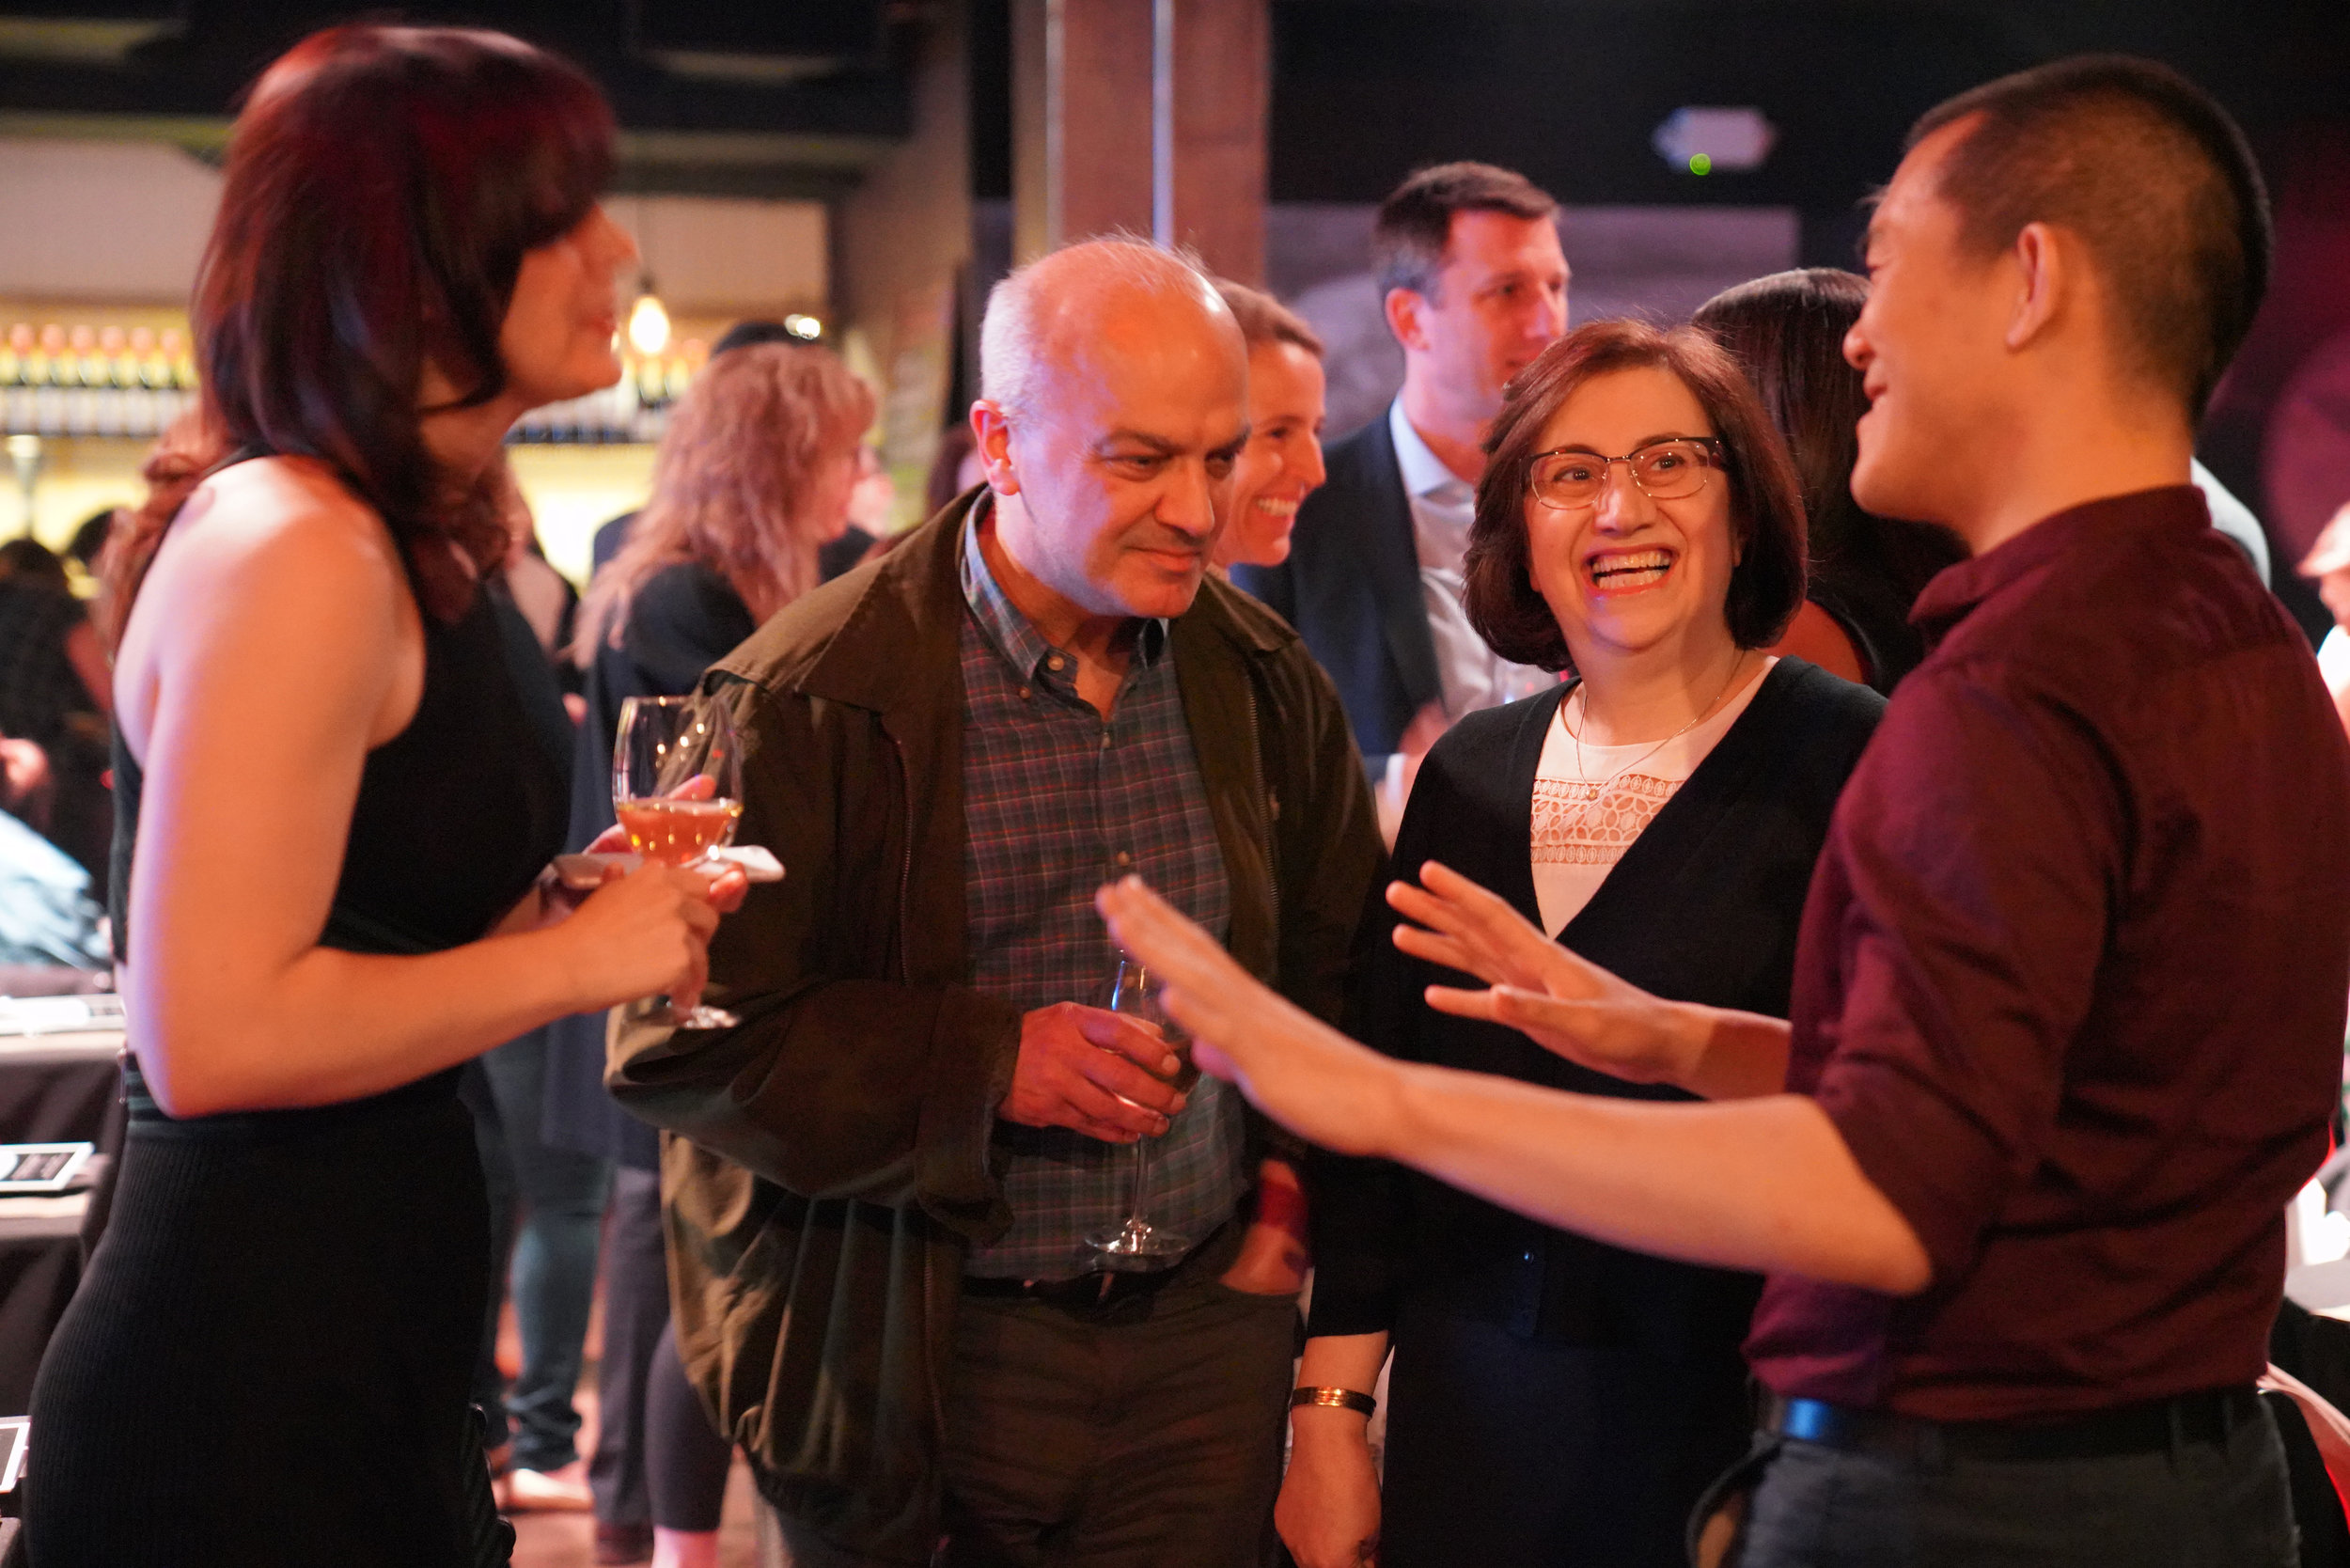 Story Collider executive director Liz Neeley (left) and host Ed Yong (right) chat with SC DC producer Maryam Zaringhalam's delightful parents during intermission.